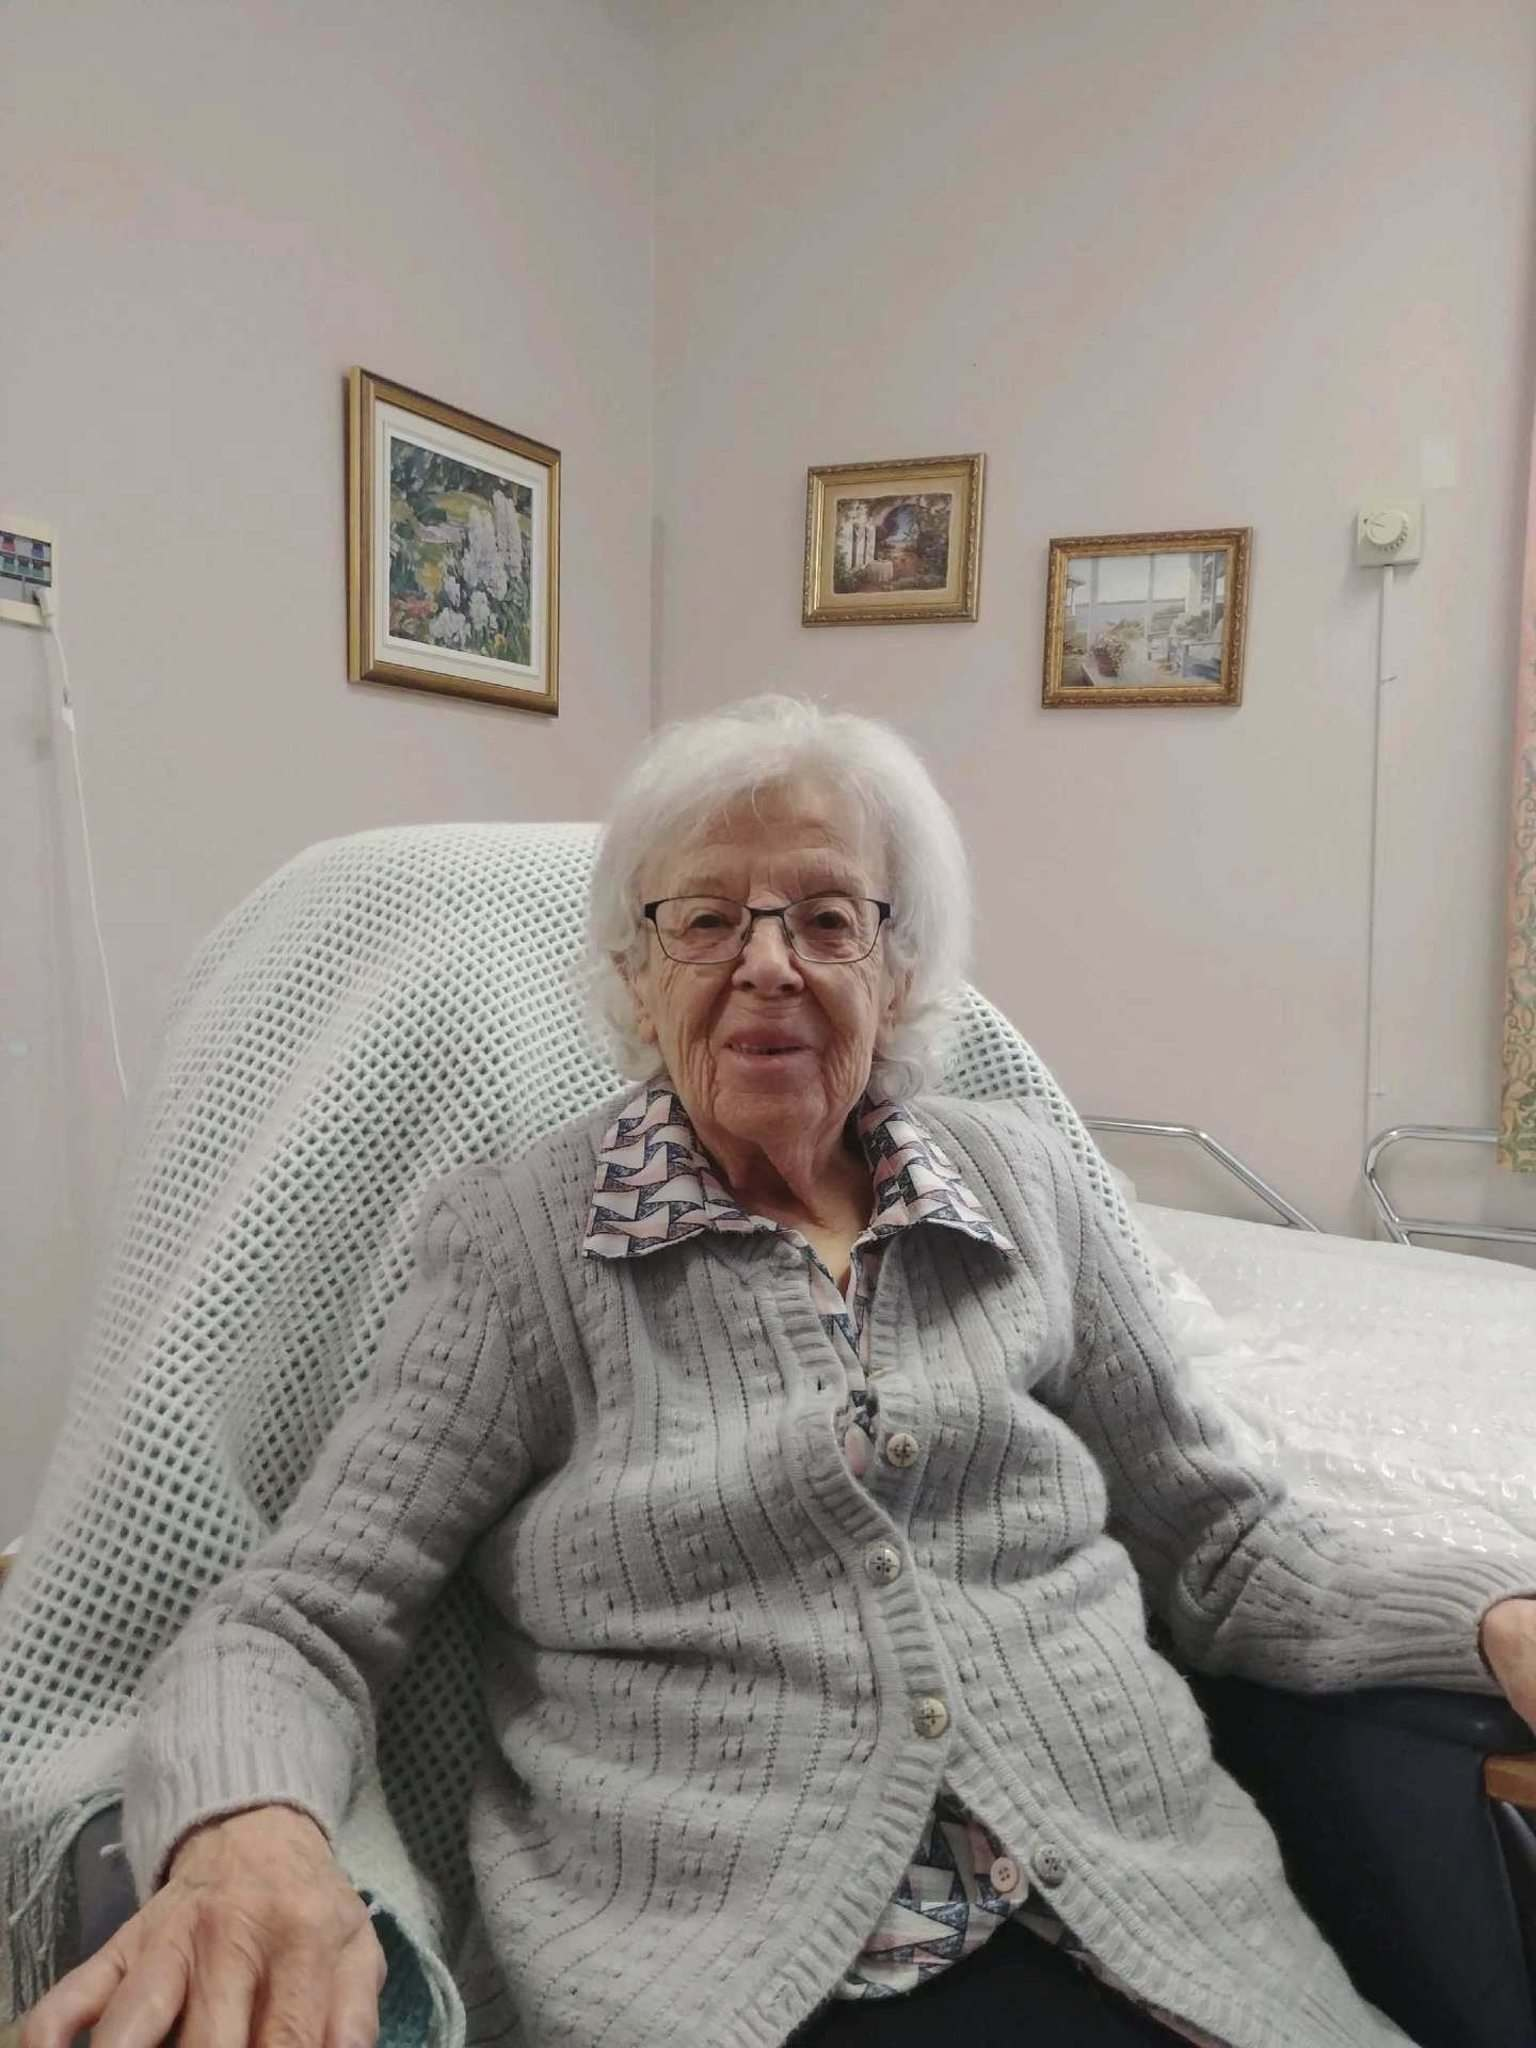 Gisele Levesque, an 89-year-old resident at the CHSLD Saint-Antoine senior's home, was the first Canadian to receive a COVID-19 vaccination. (Handout - National Capital Integrated University Centre of Health and Social Services / The Canadian Press files)